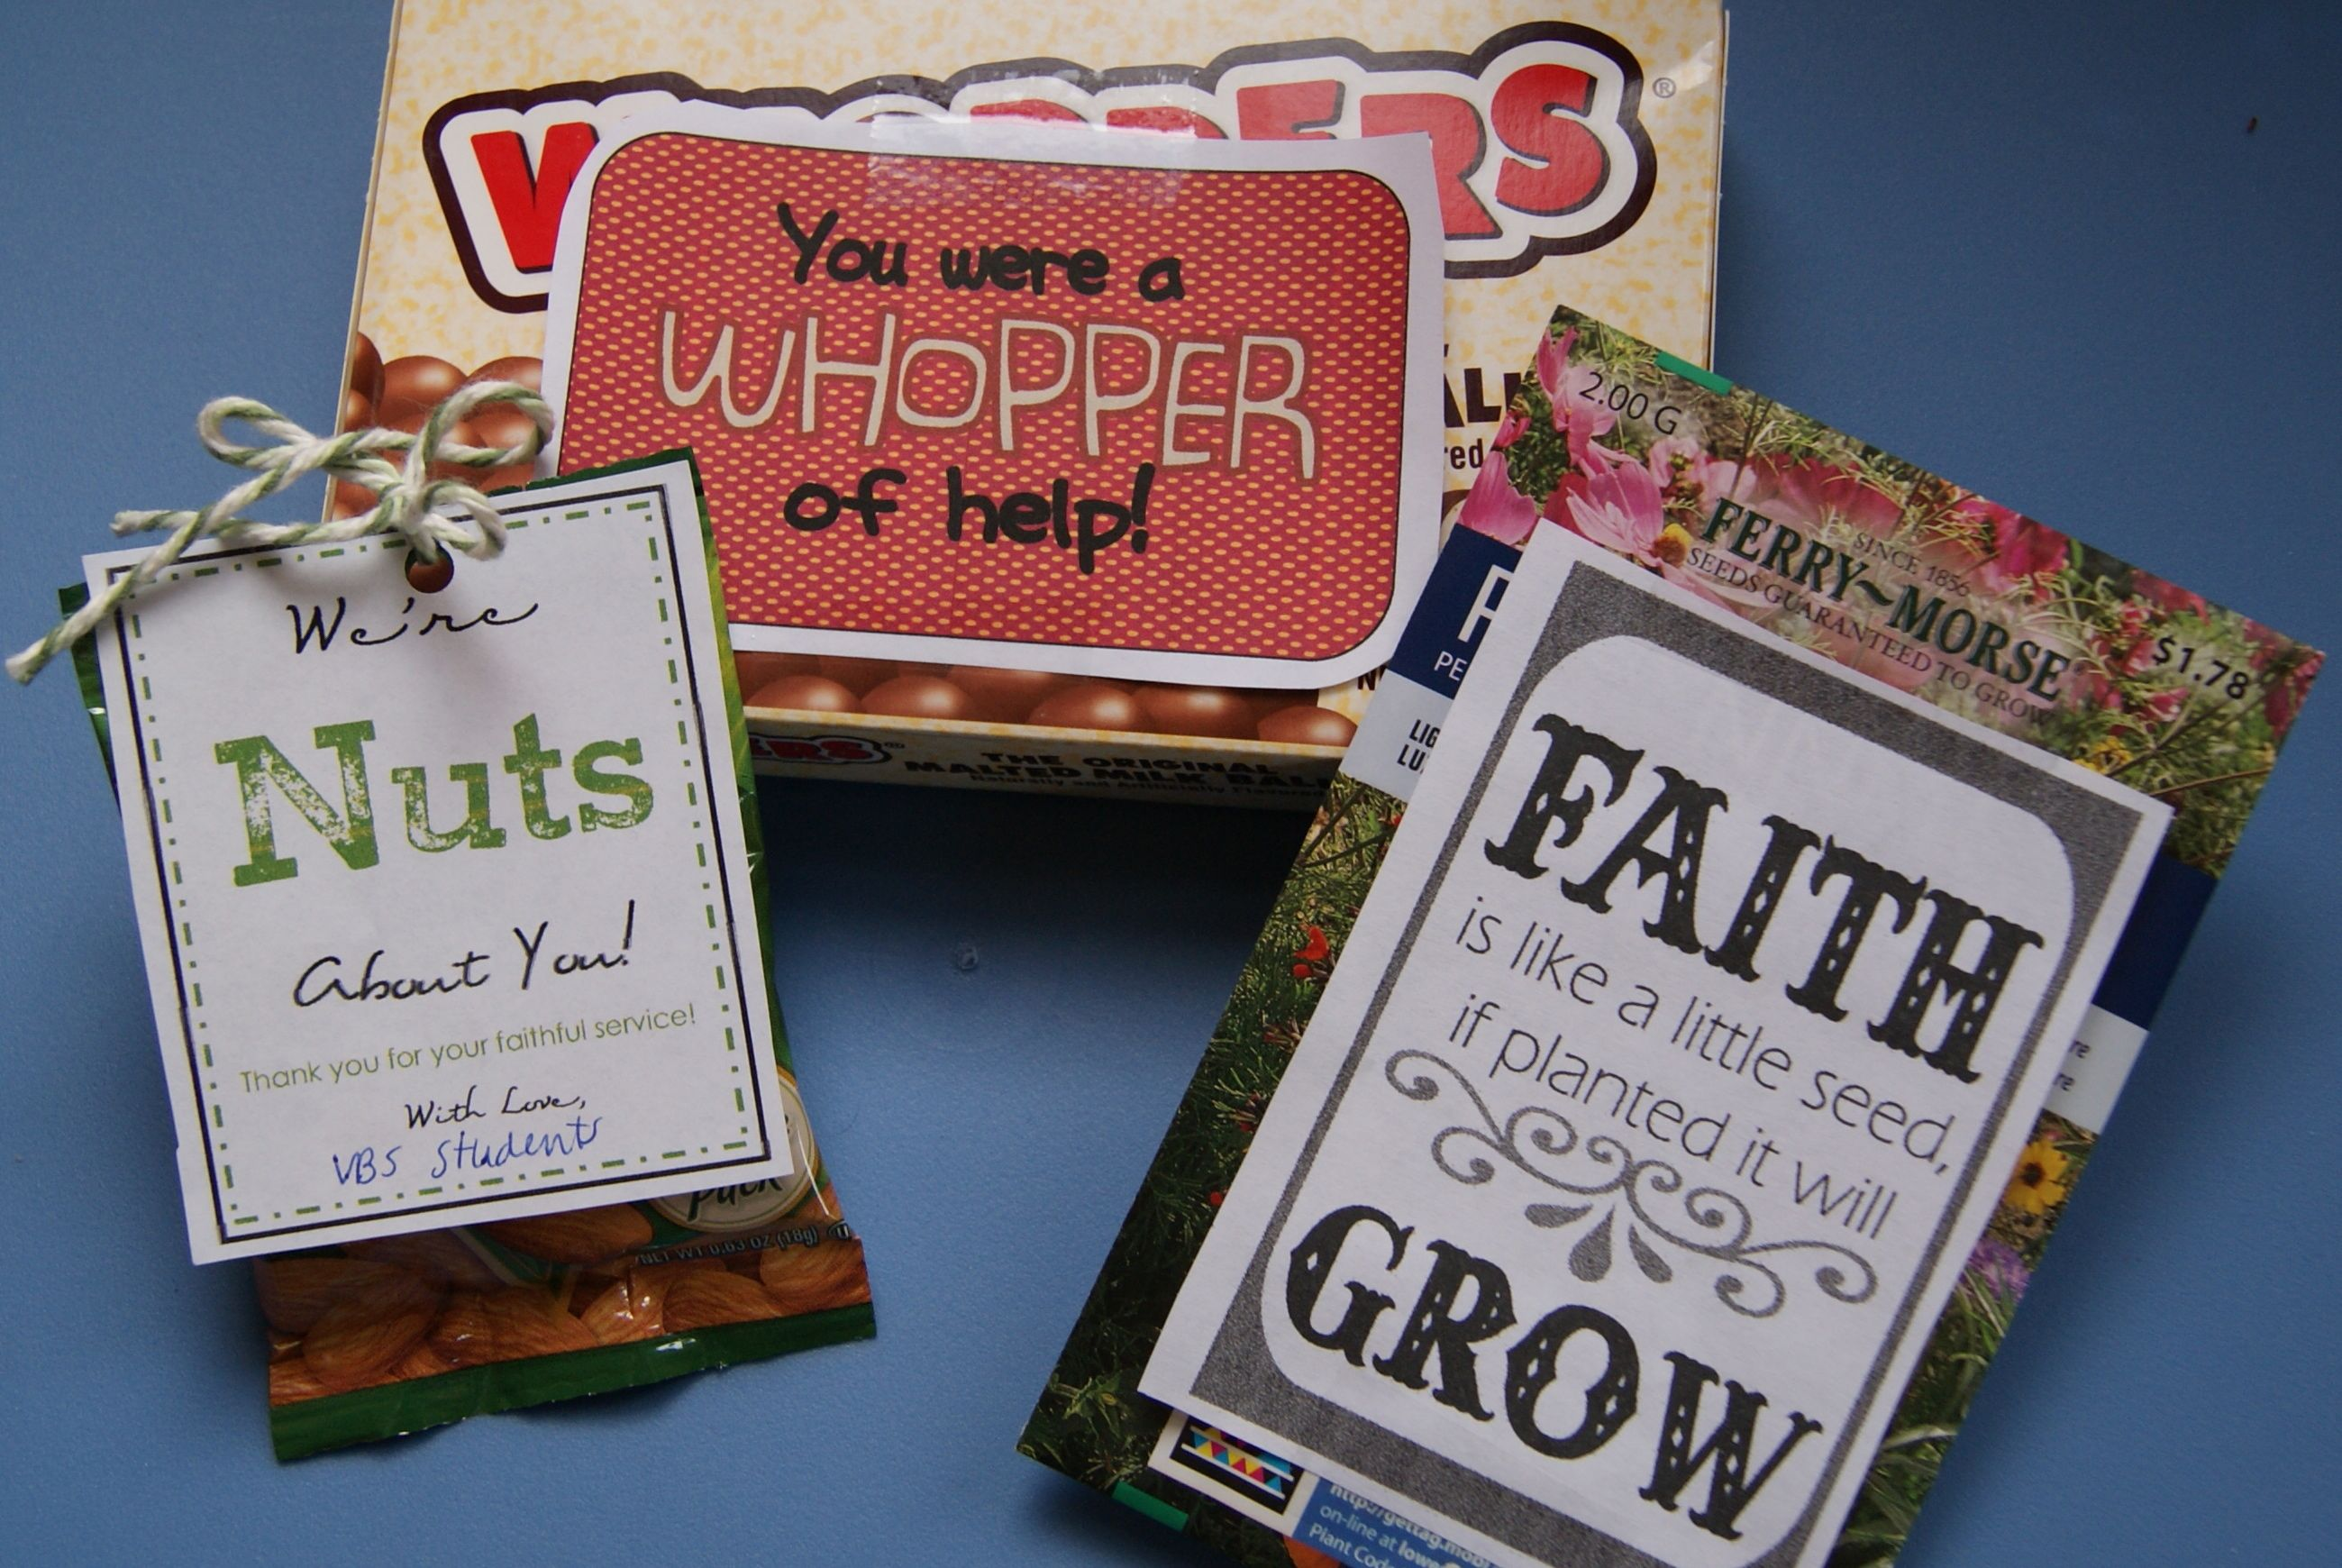 Classroom Recognition Ideas ~ Volunteer recognition gifts for sunday school vbs